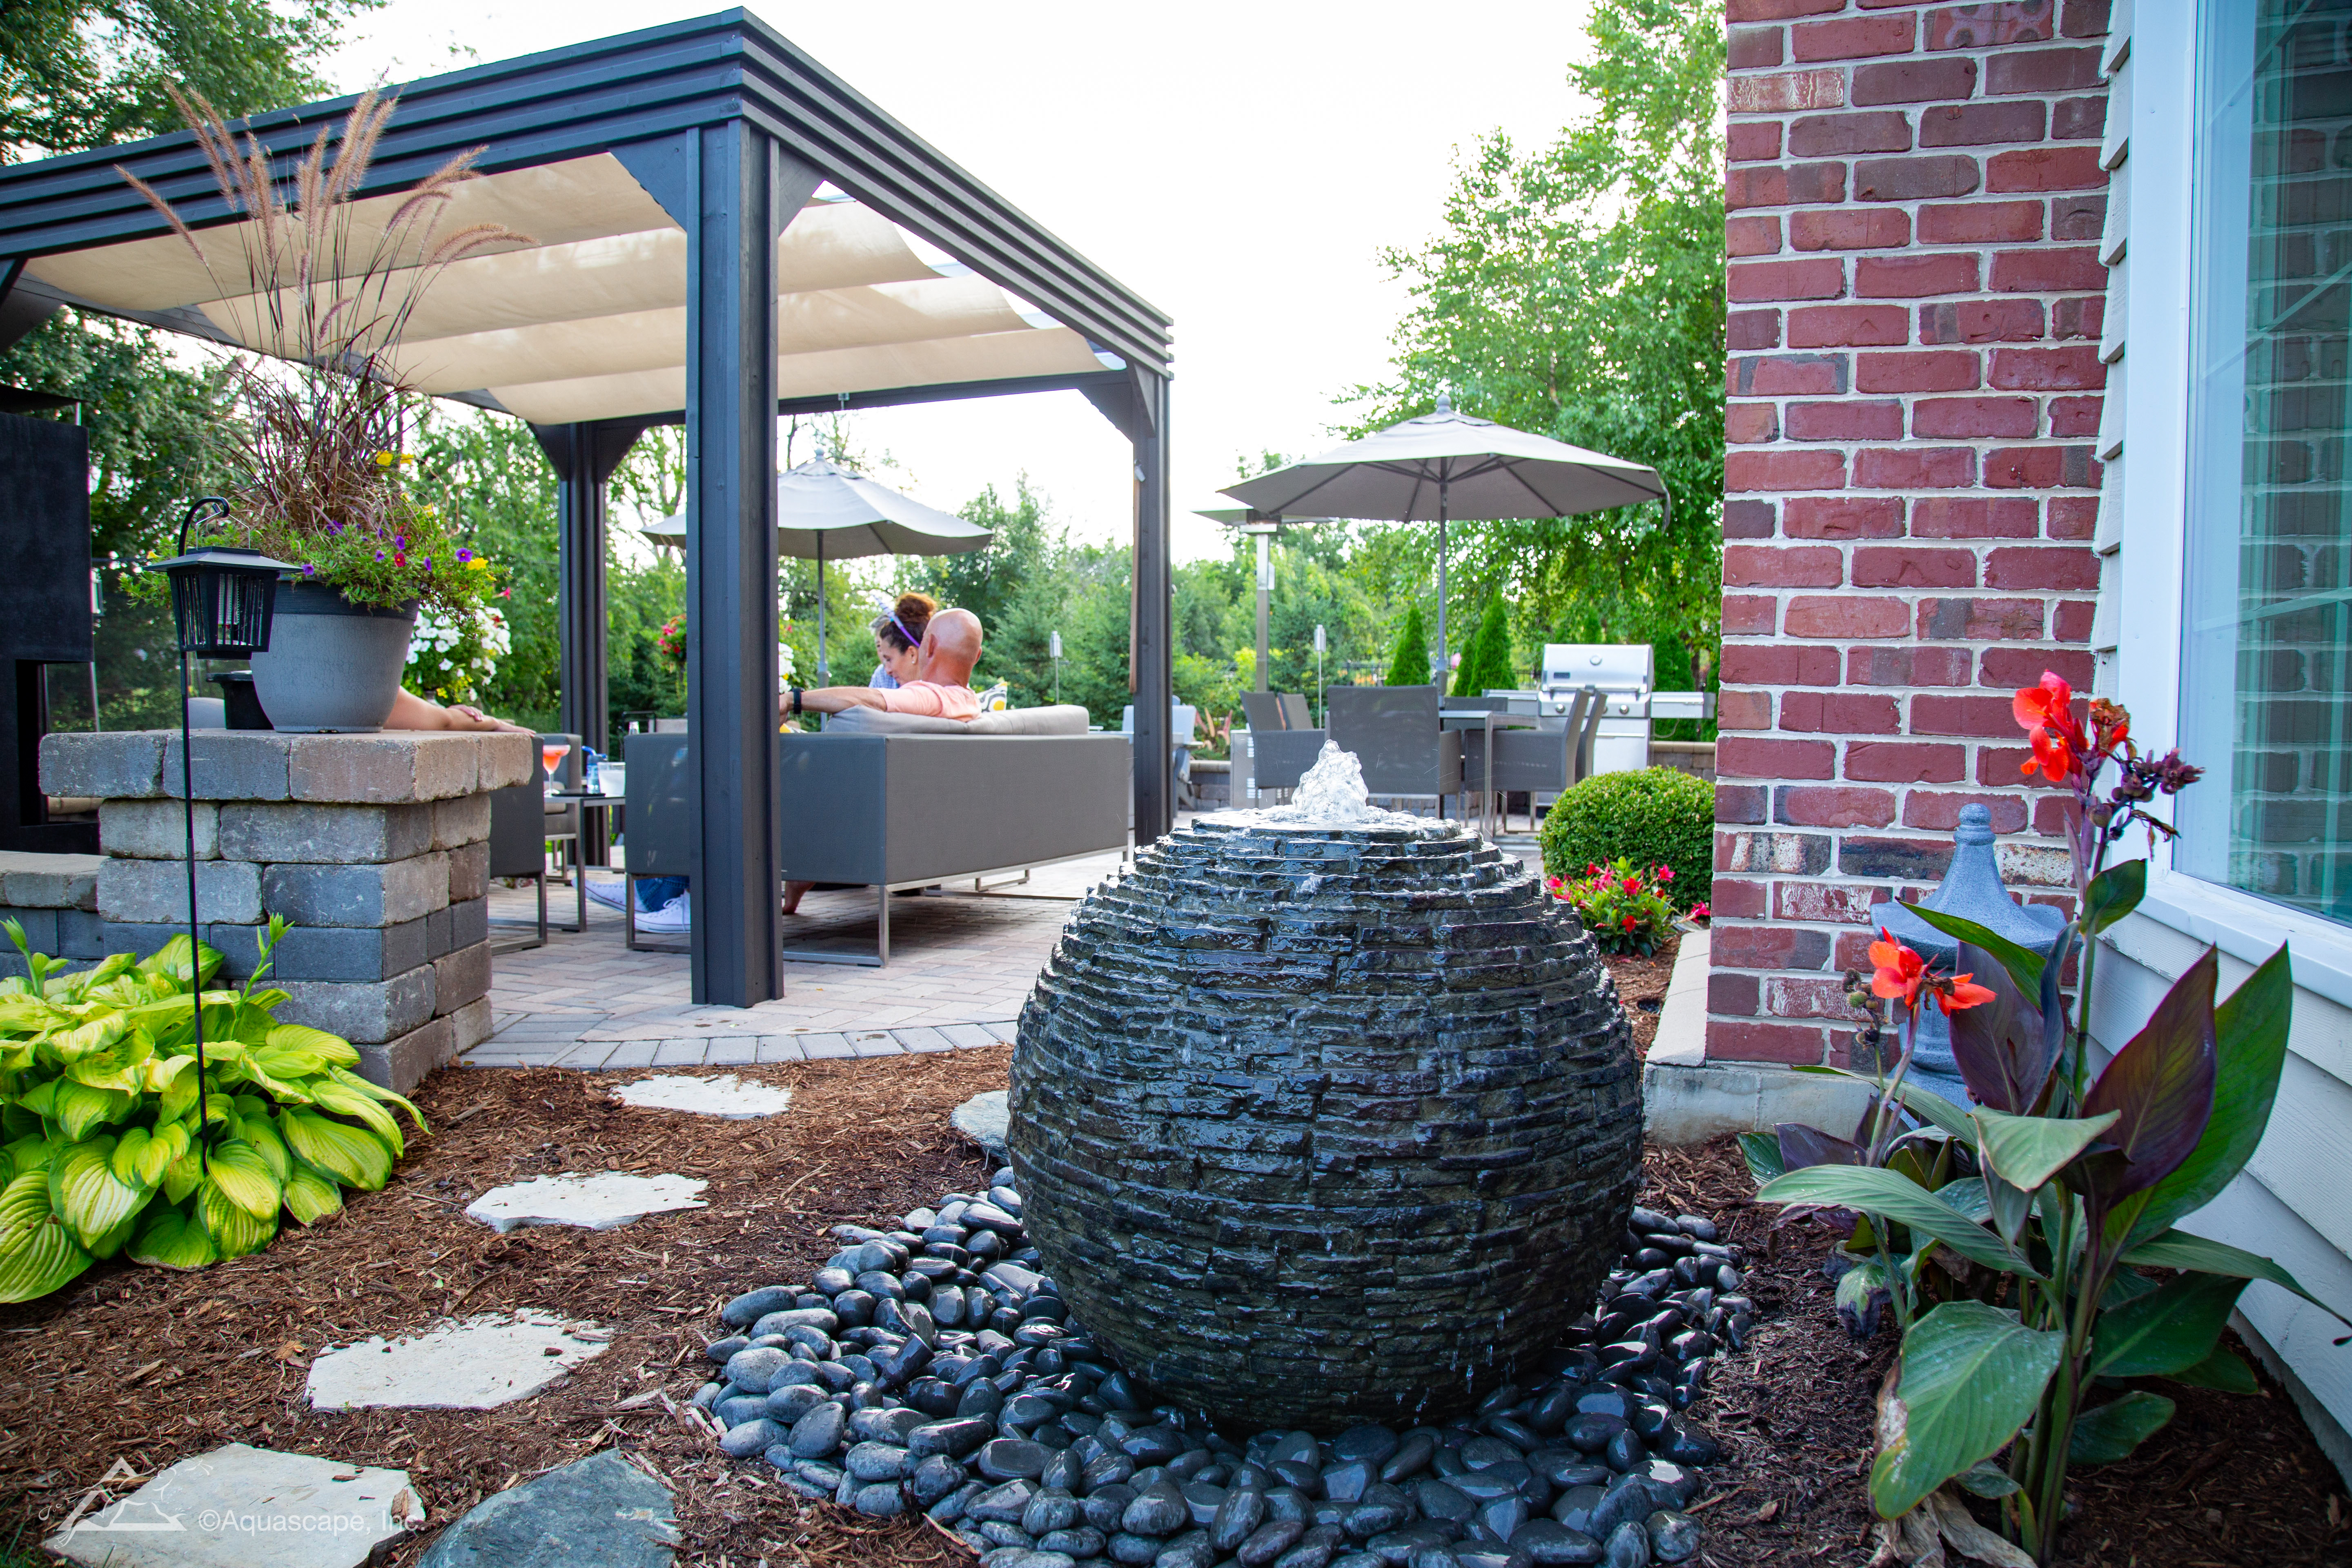 Medium Stacked Slate Sphere Landscape Fountain Kit ... on Small Backyard Water Features id=22545